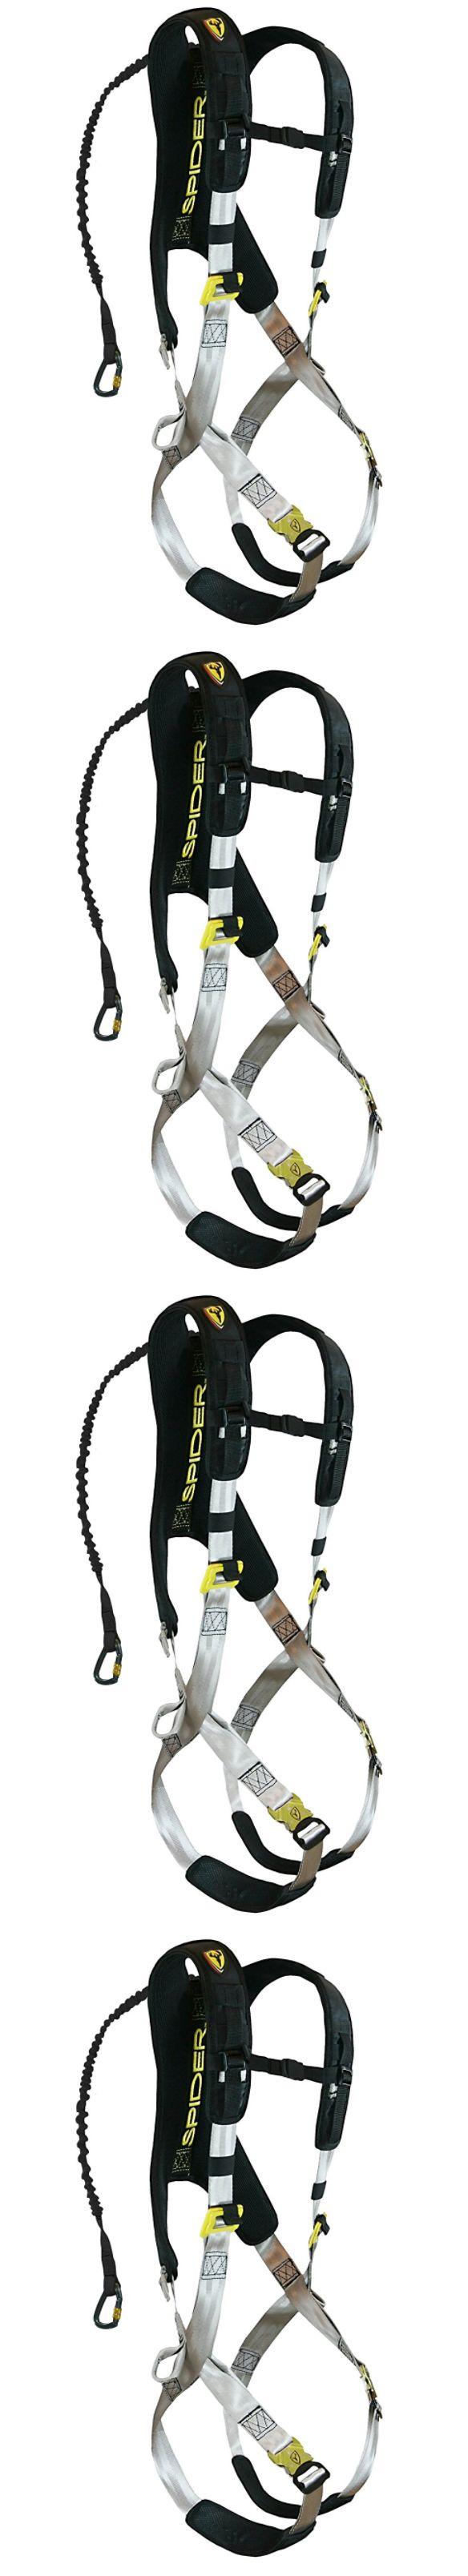 Blind and Tree Stand Accessories 177912: New Tree Spider Scent Blocker Speed Safety Harness L Xl Bow Hunting Tree Stand -> BUY IT NOW ONLY: $99.38 on eBay!